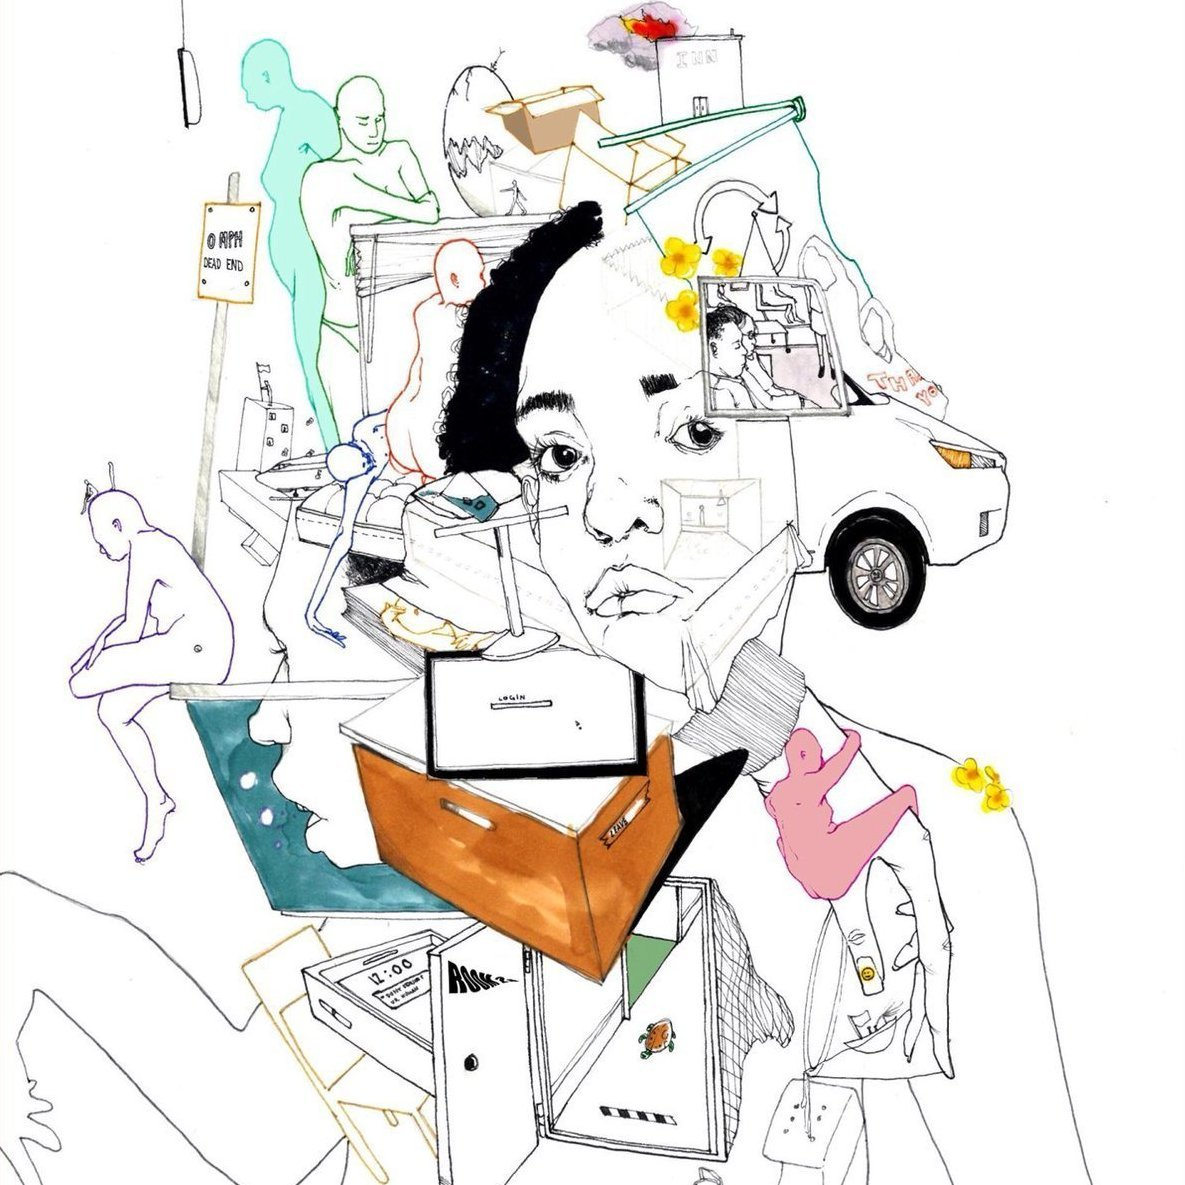 If ya think we're listening to anything other than @noname's #Room25 album this weekend, well then ya better think again 💁🏽♀️